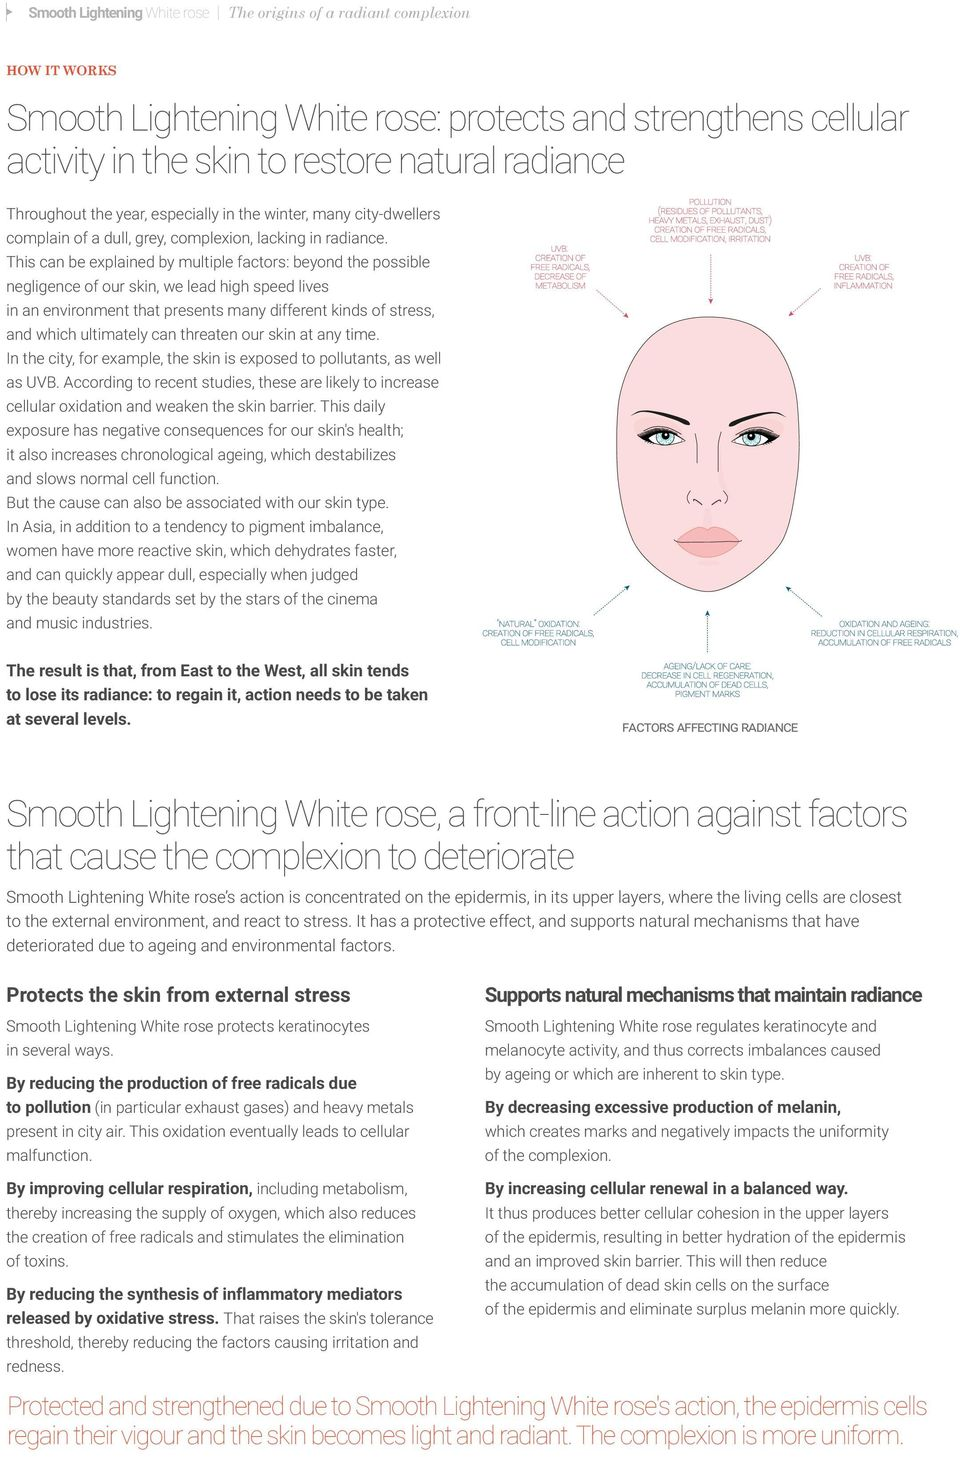 This can be explained by multiple factors: beyond the possible negligence of our skin, we lead high speed lives in an environment that presents many different kinds of stress, and which ultimately